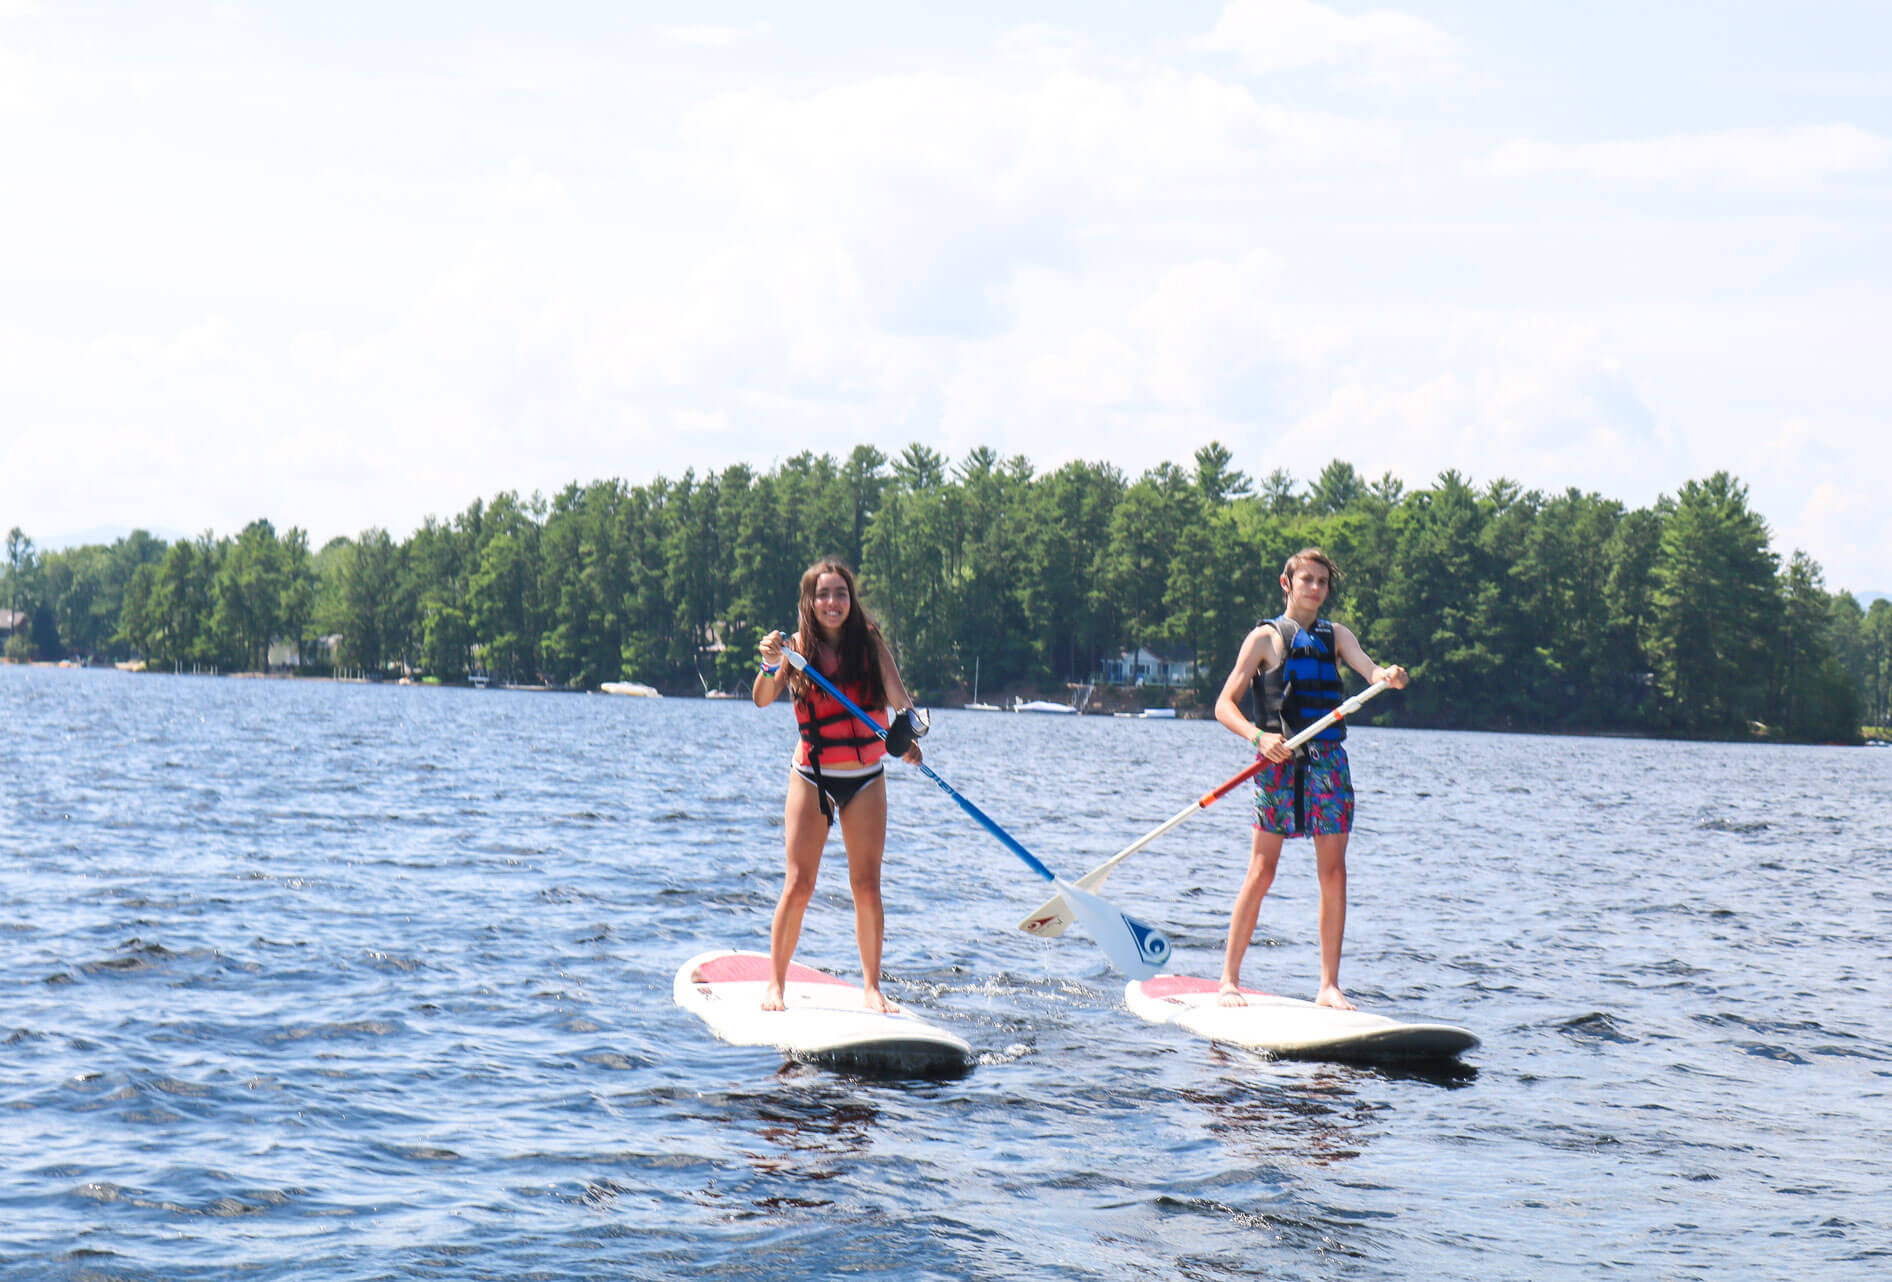 Campers paddle stand-up paddleboards